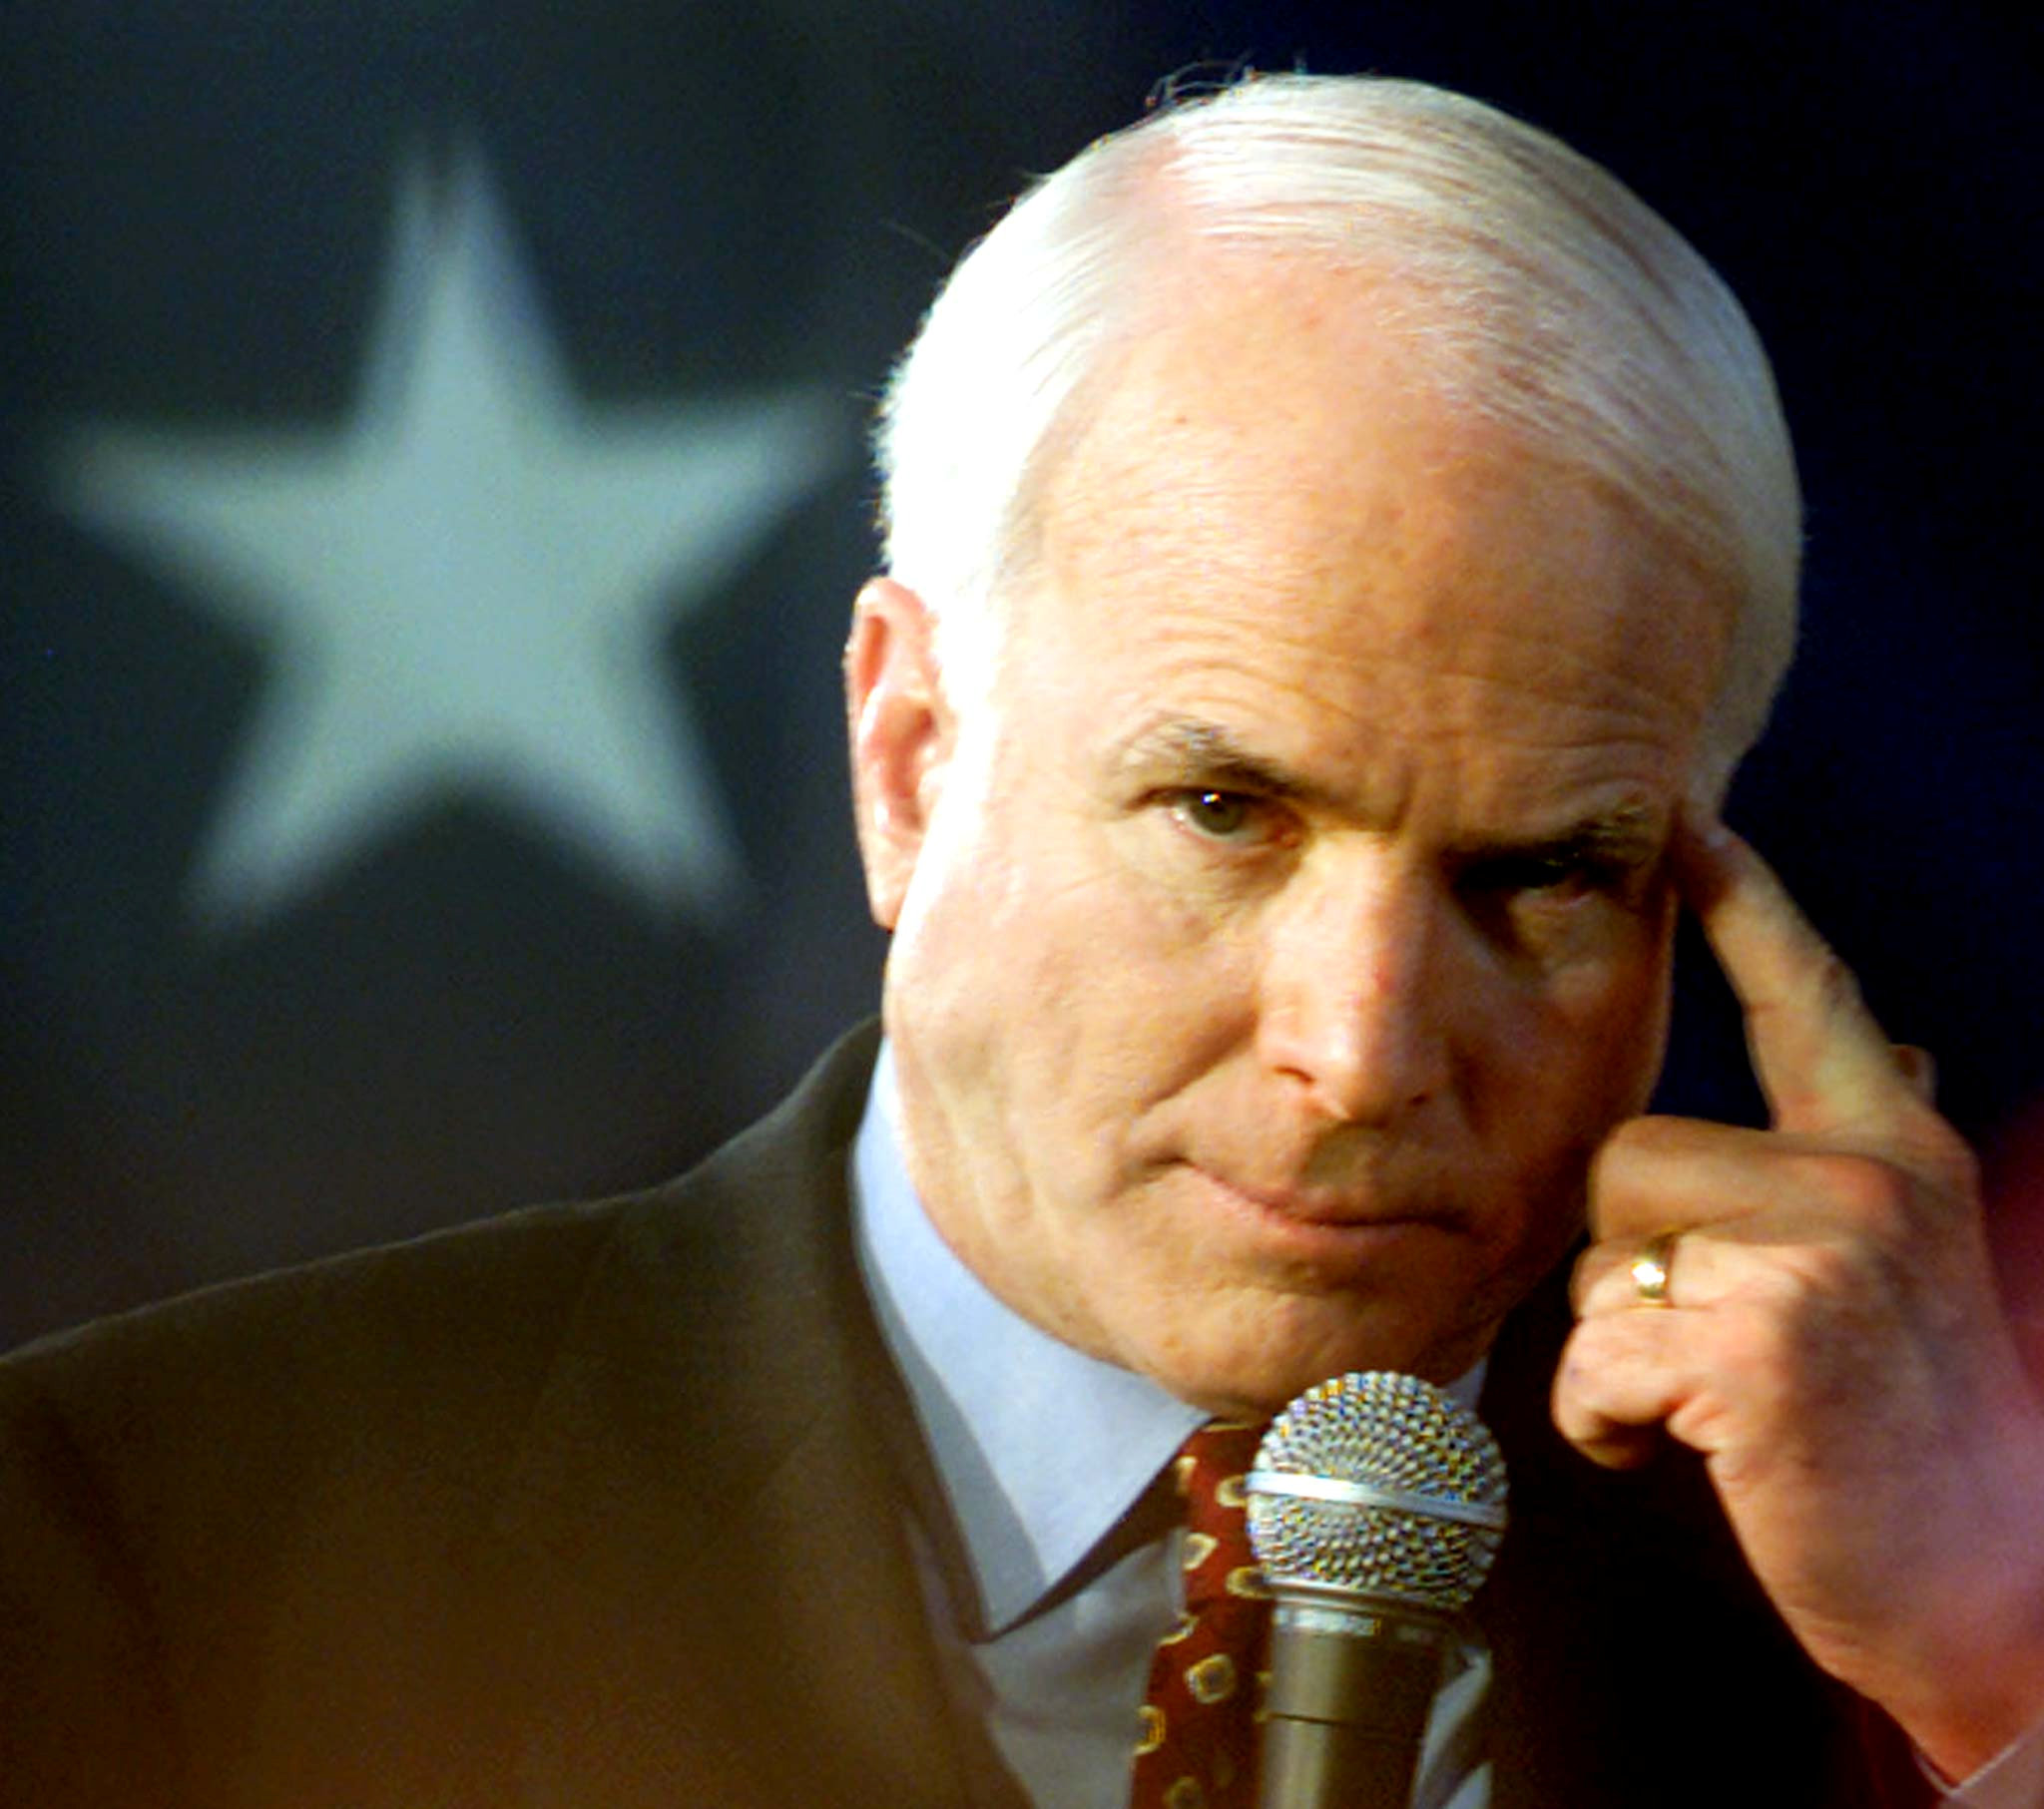 FILE PHOTO - Republican presidential hopeful John McCain points to his head during his Carolina kickoff rally at Presbyterian College February 2, 2000. REUTERS/Kevin Lamarque/File Photo